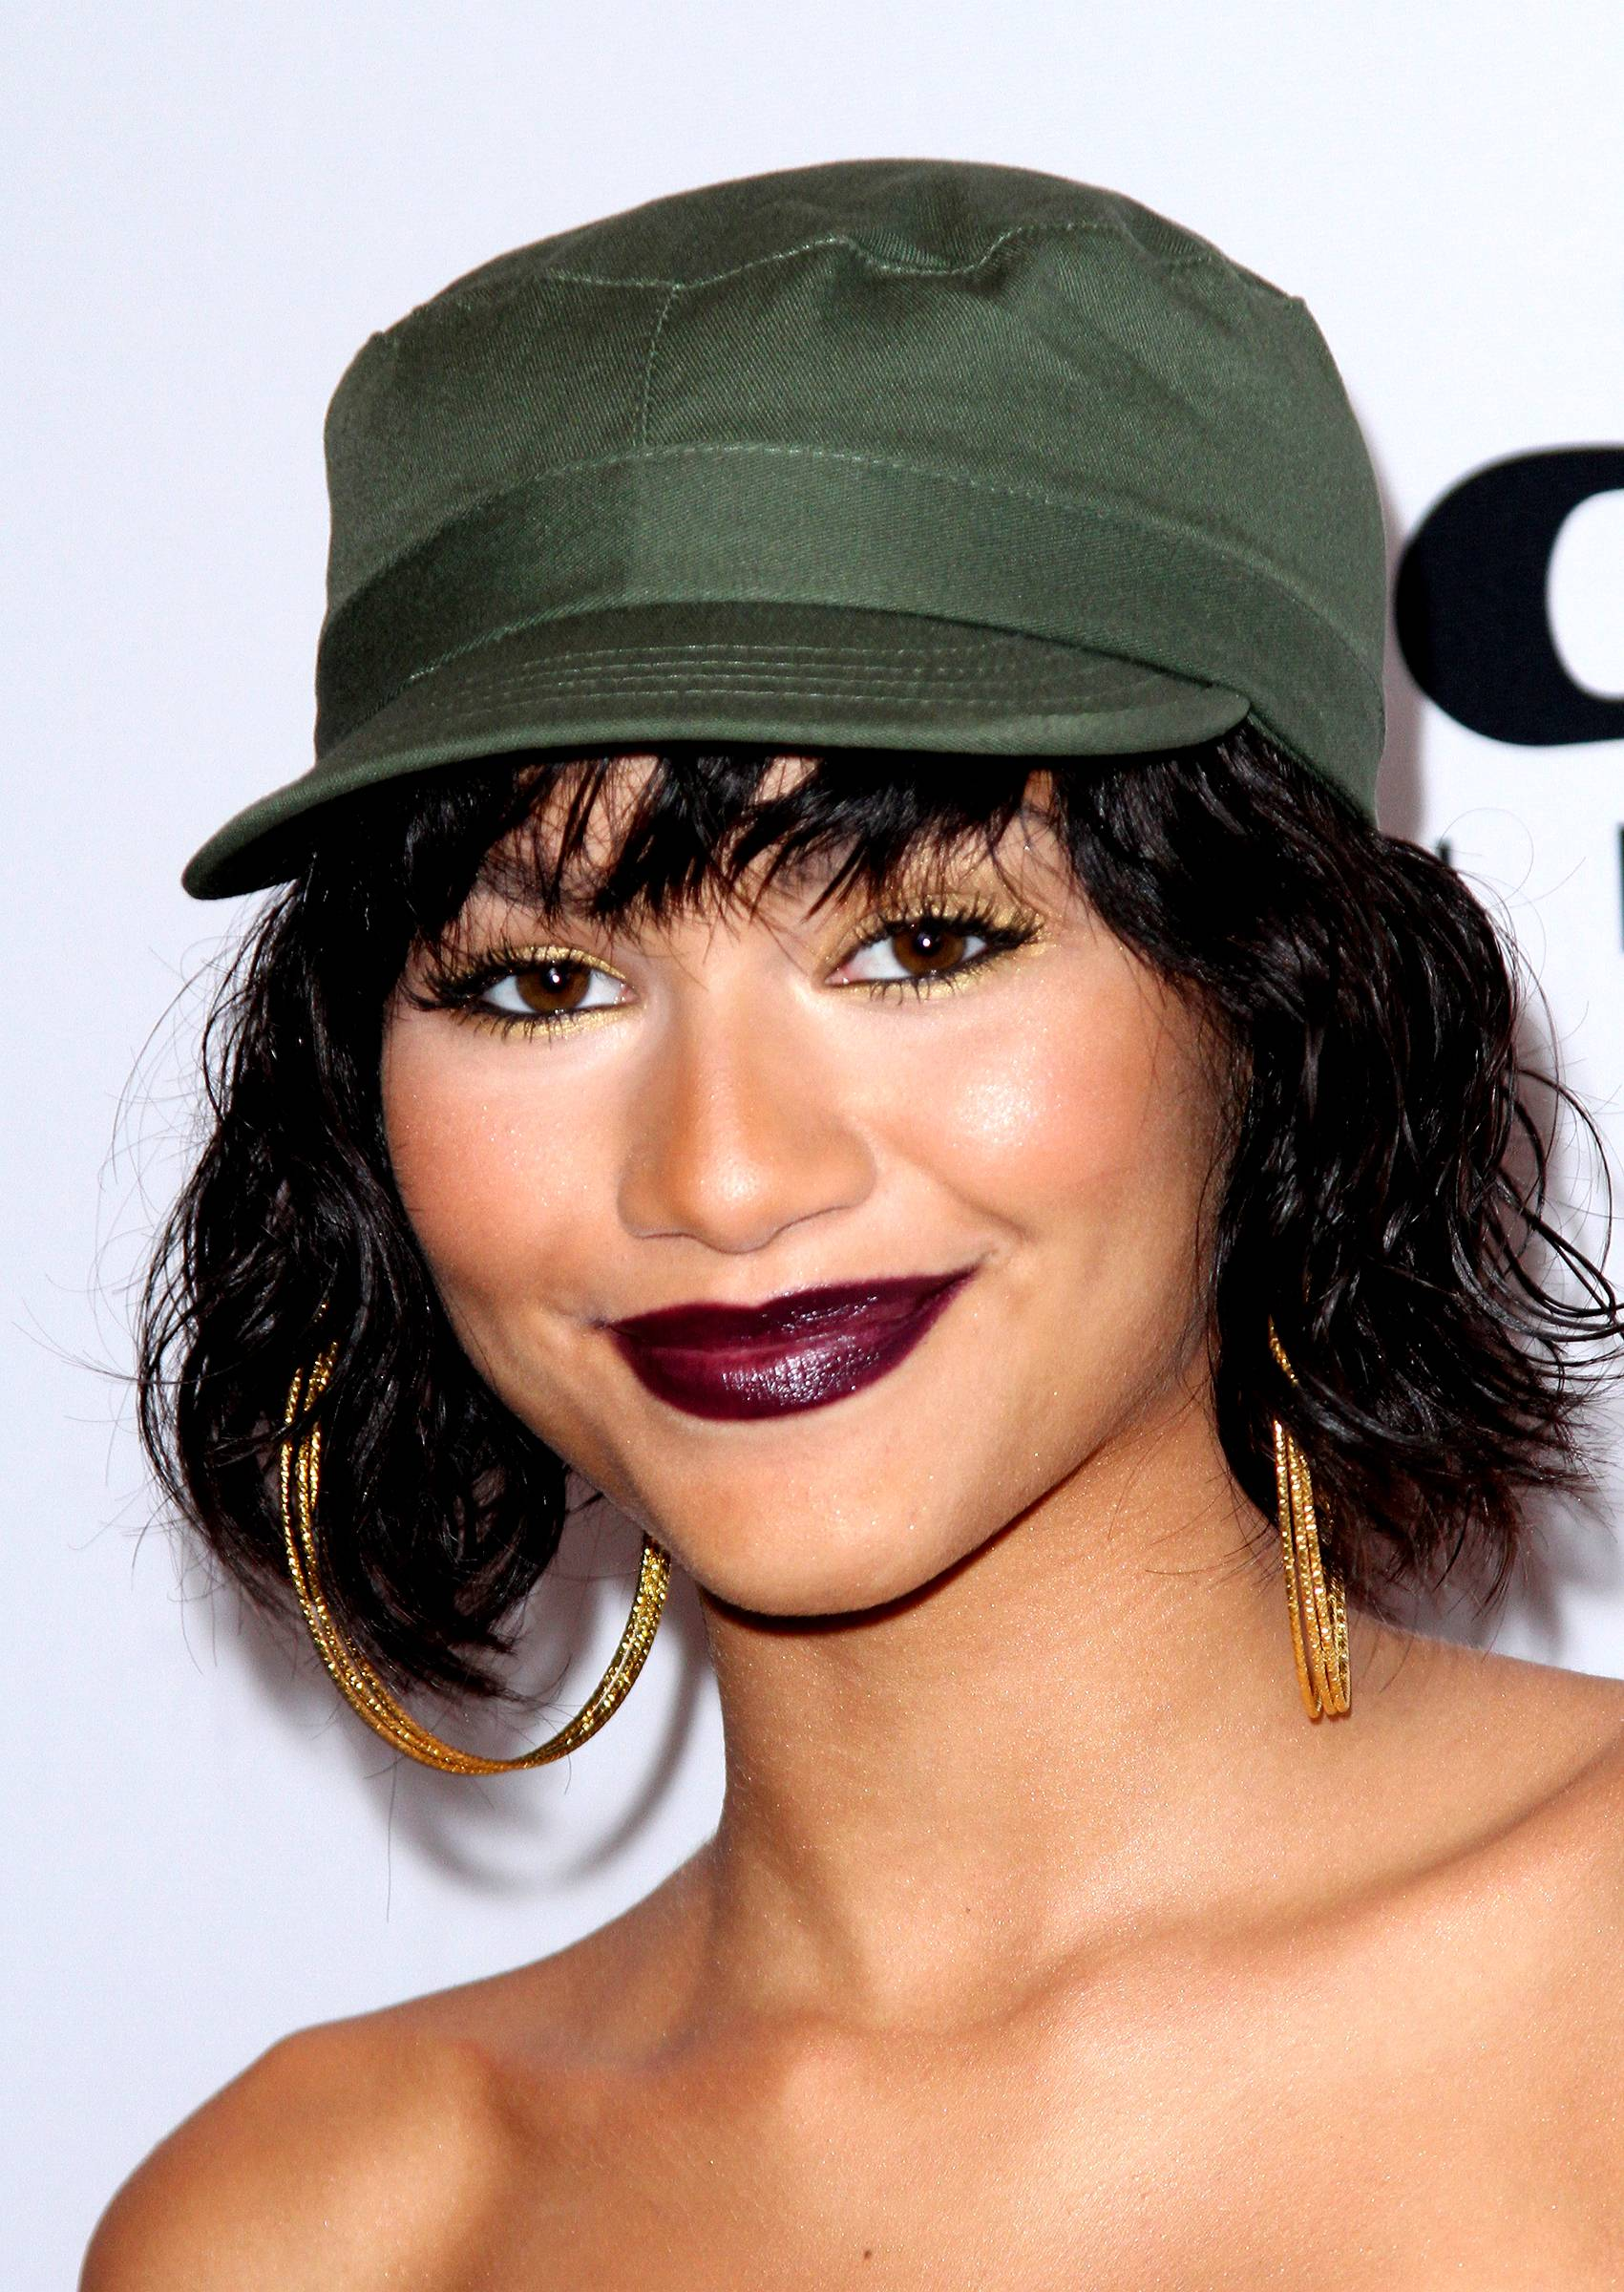 She's Effortlesly Fly - It comes natural to her. (Photo: Maury Phillips/Getty Images for BMI)